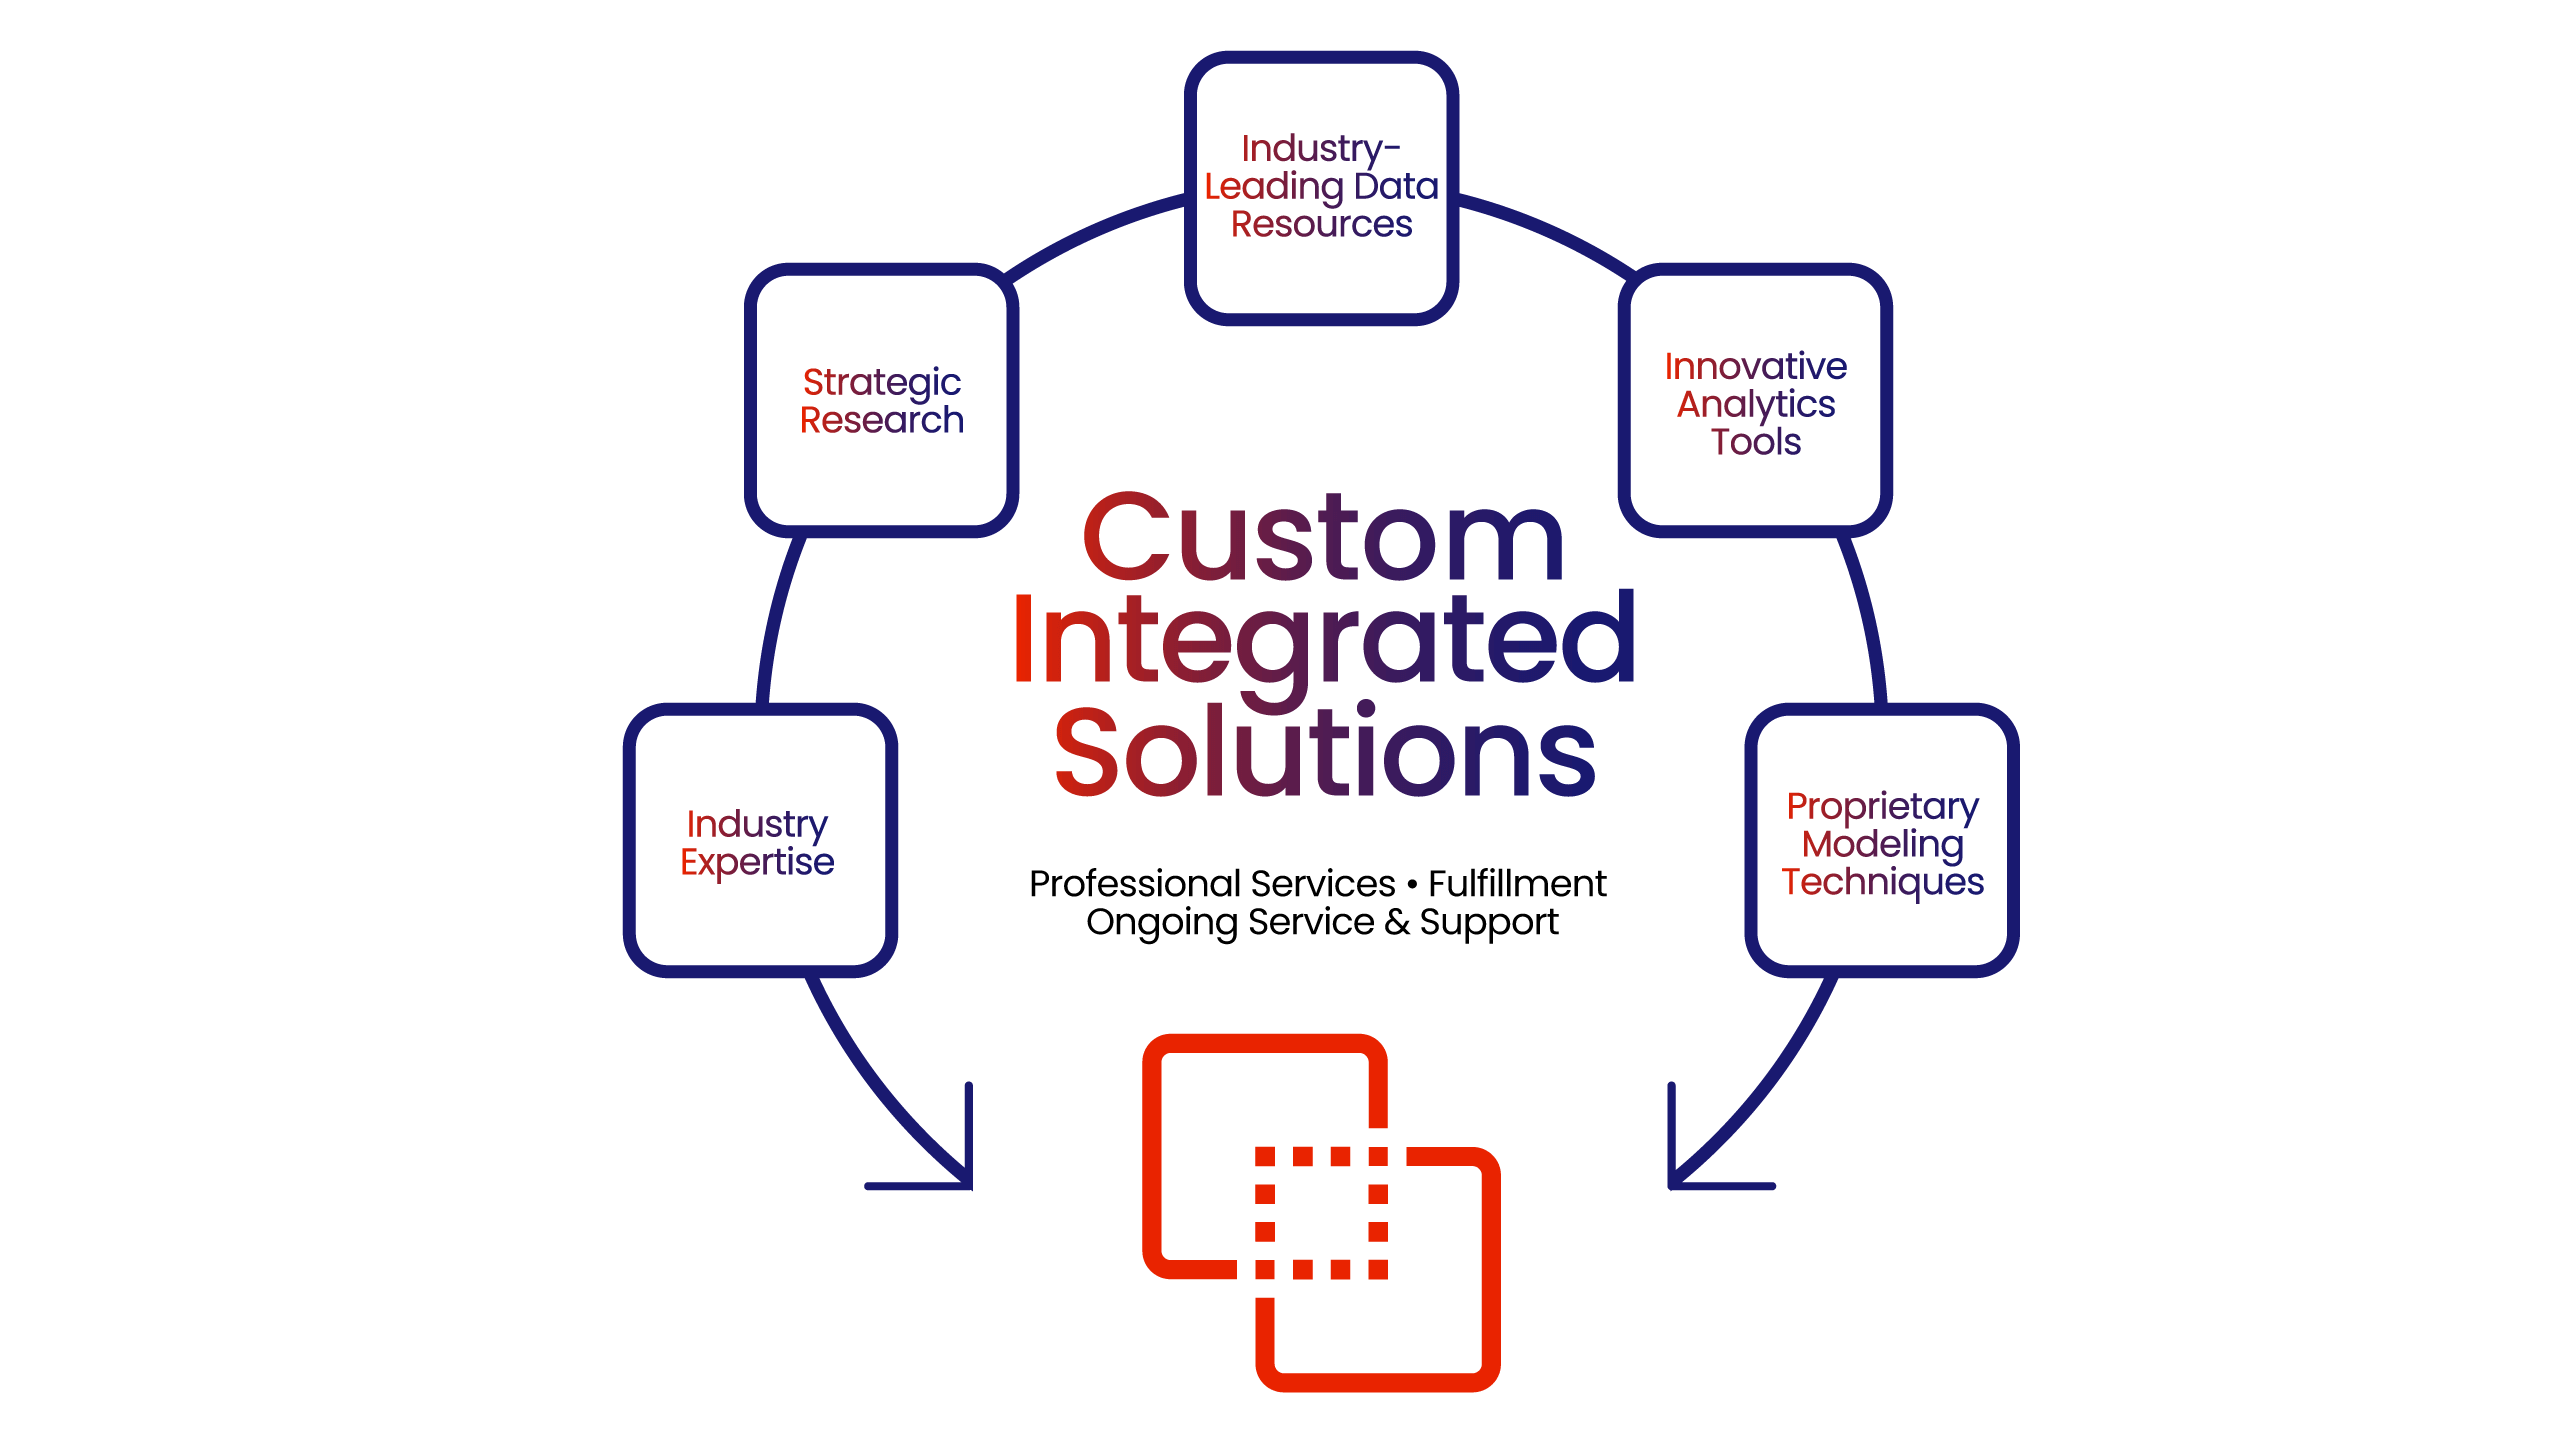 CoreLogic Advisory Services offers Custom Integrated Solutions - Professional Services, Fulfillment, Ongoing Services & Support